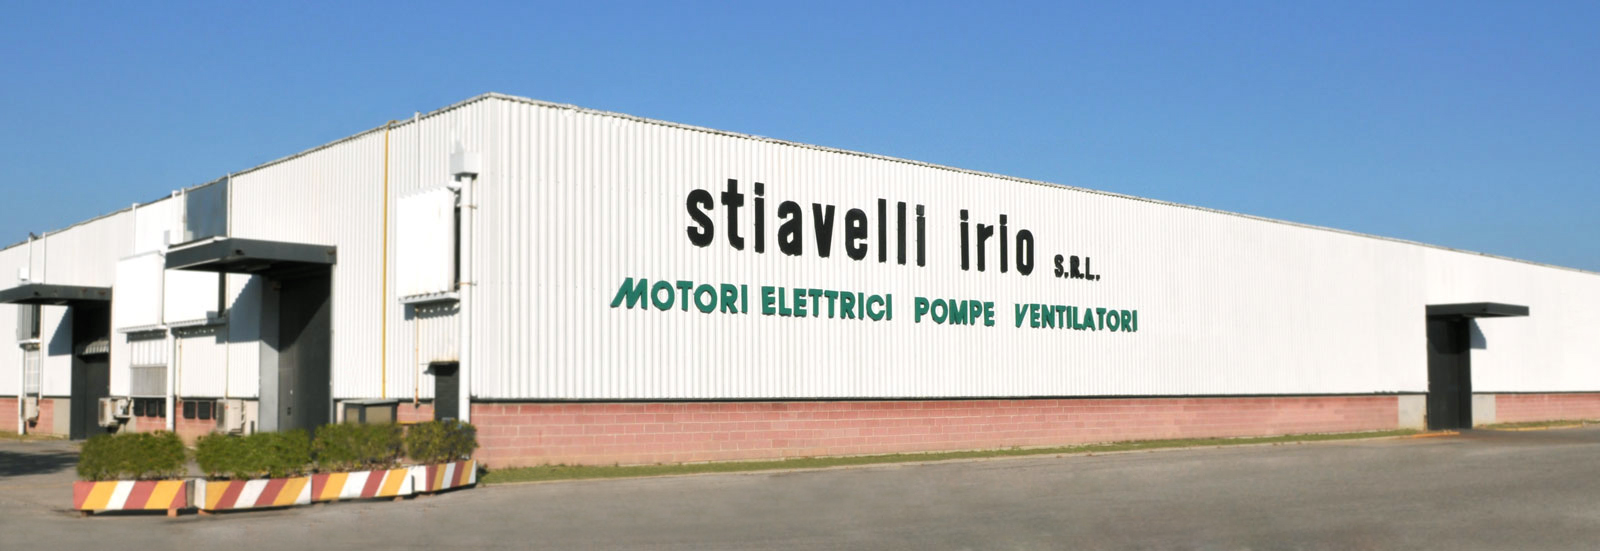 stiavelli-irio-headquarters-via-pantano-firenze1